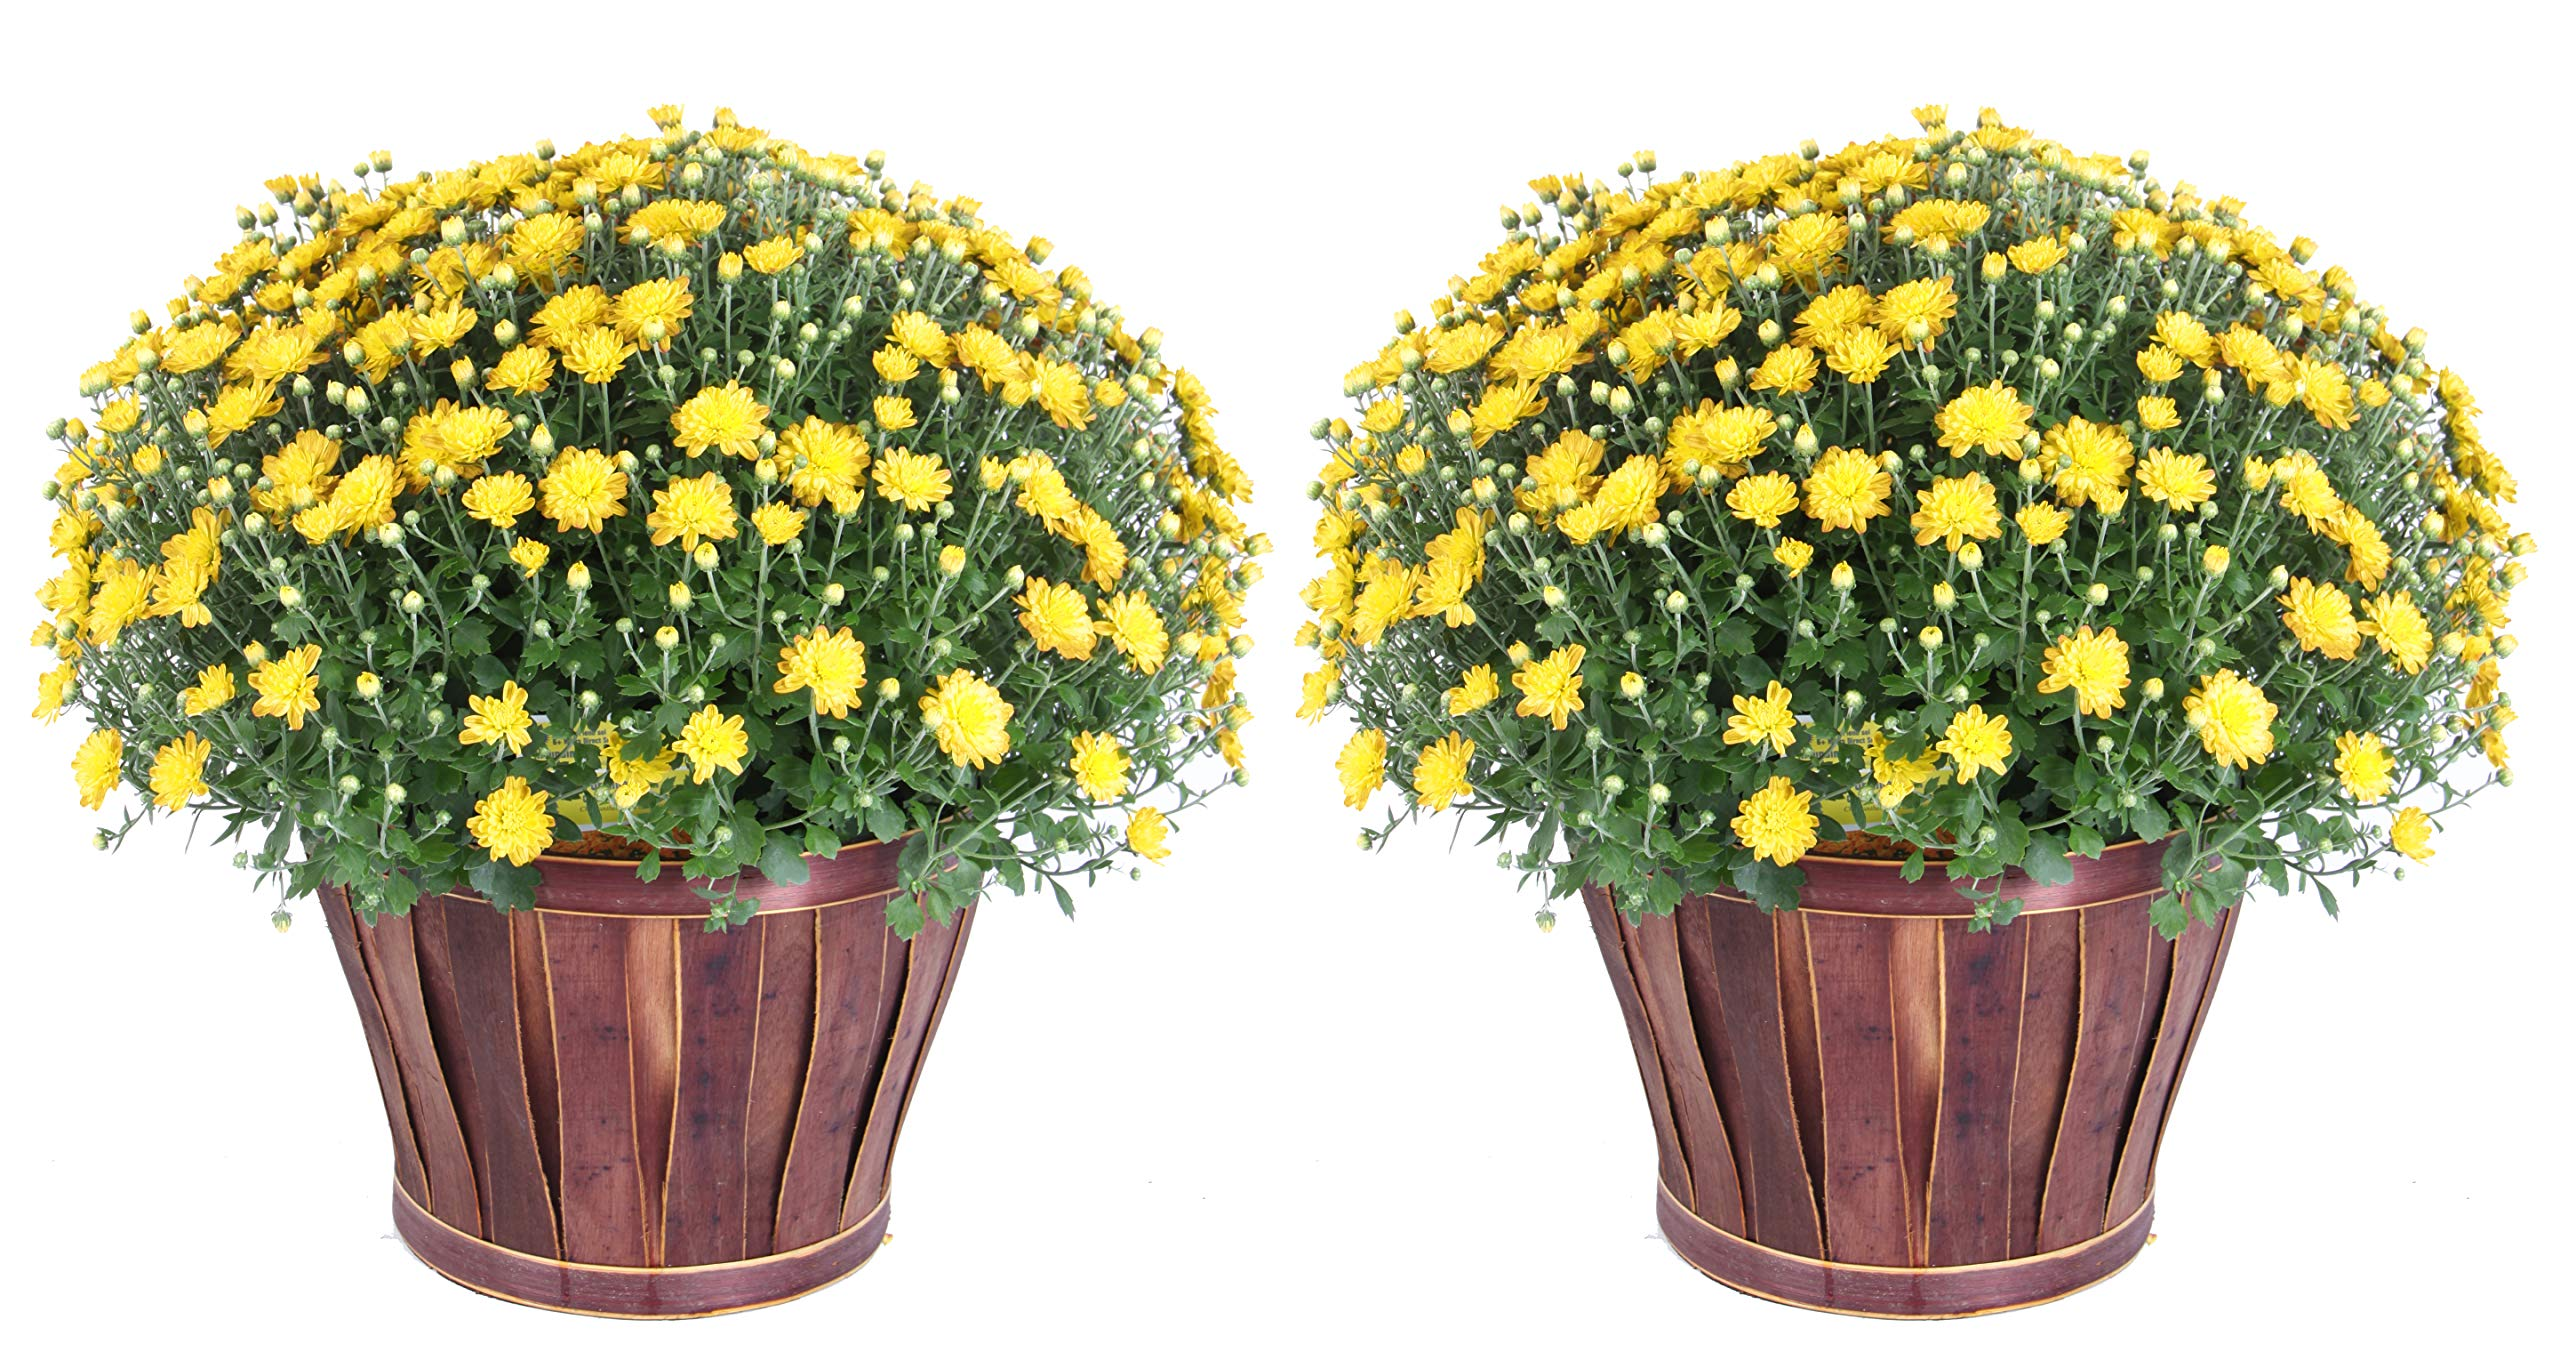 Costa Farms Chrysanthemum Flowering Mum Ships in Porch and Patio Ready Bushel Basket, 3-QT, Yellow by Costa Farms